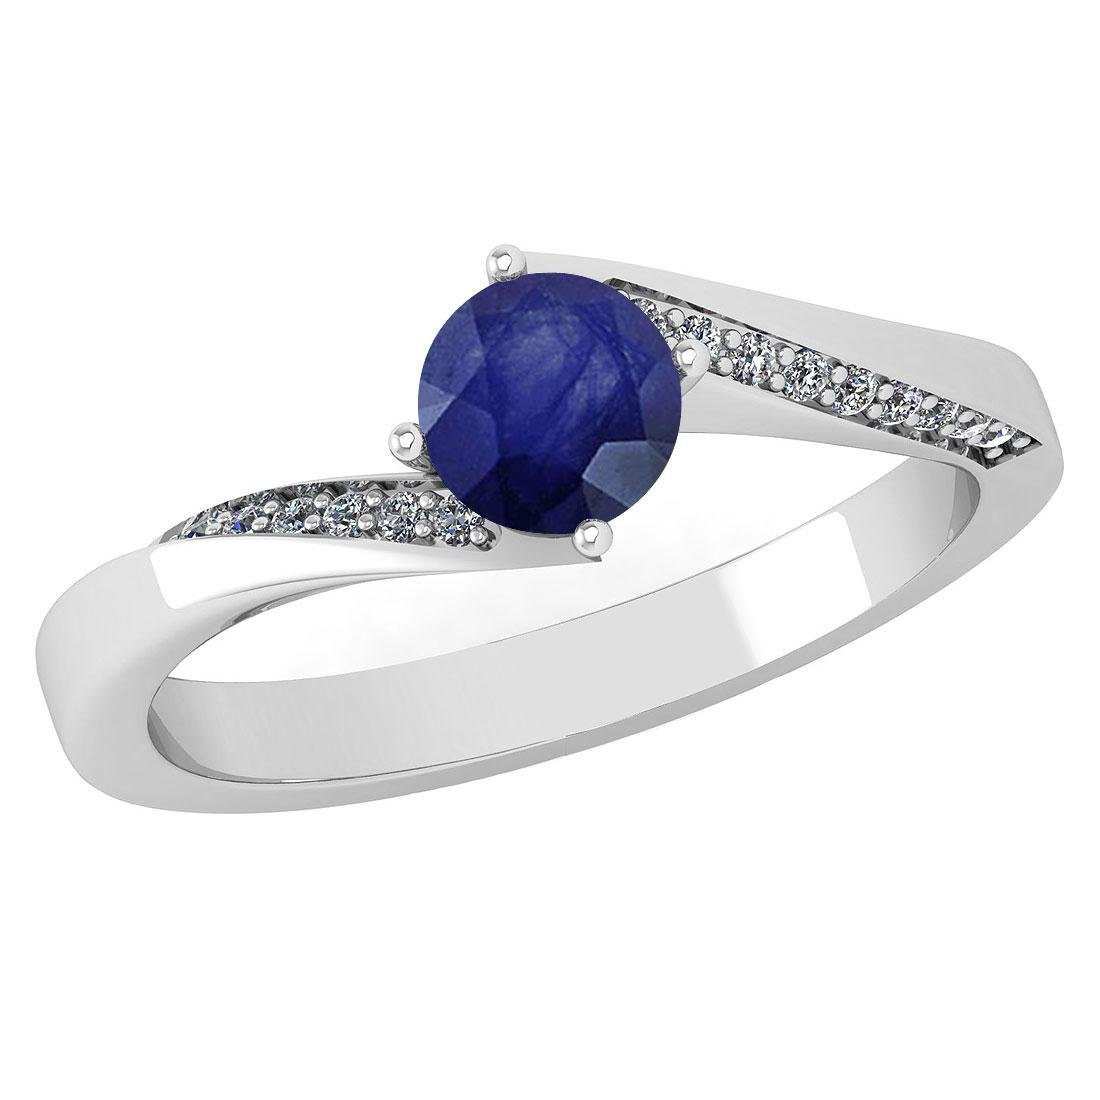 Certified 1.09 Ctw Blue Sapphire And Diamond 14k White